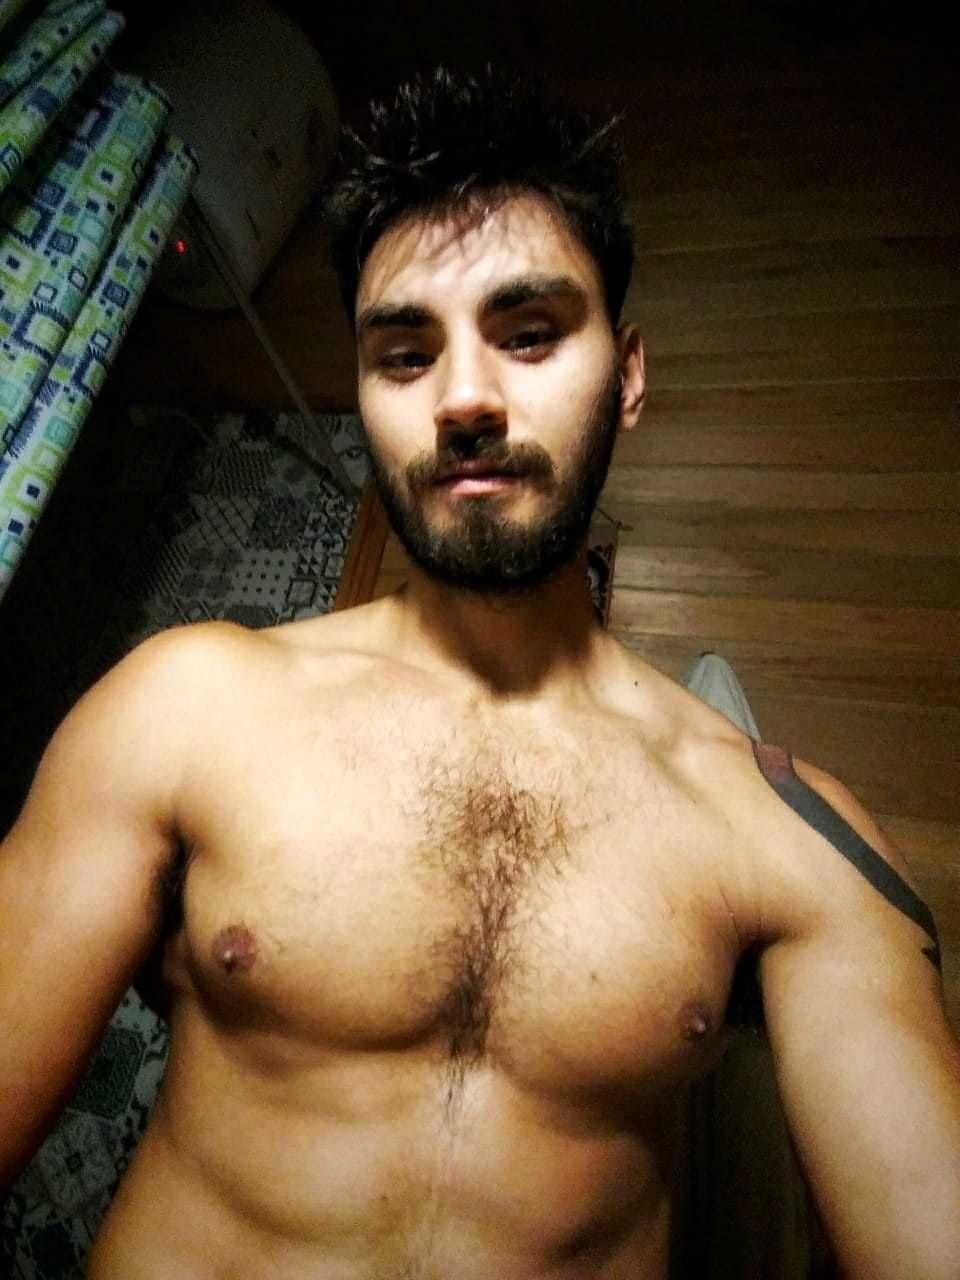 Free nudes of Elias Lyon onlyfans leaked